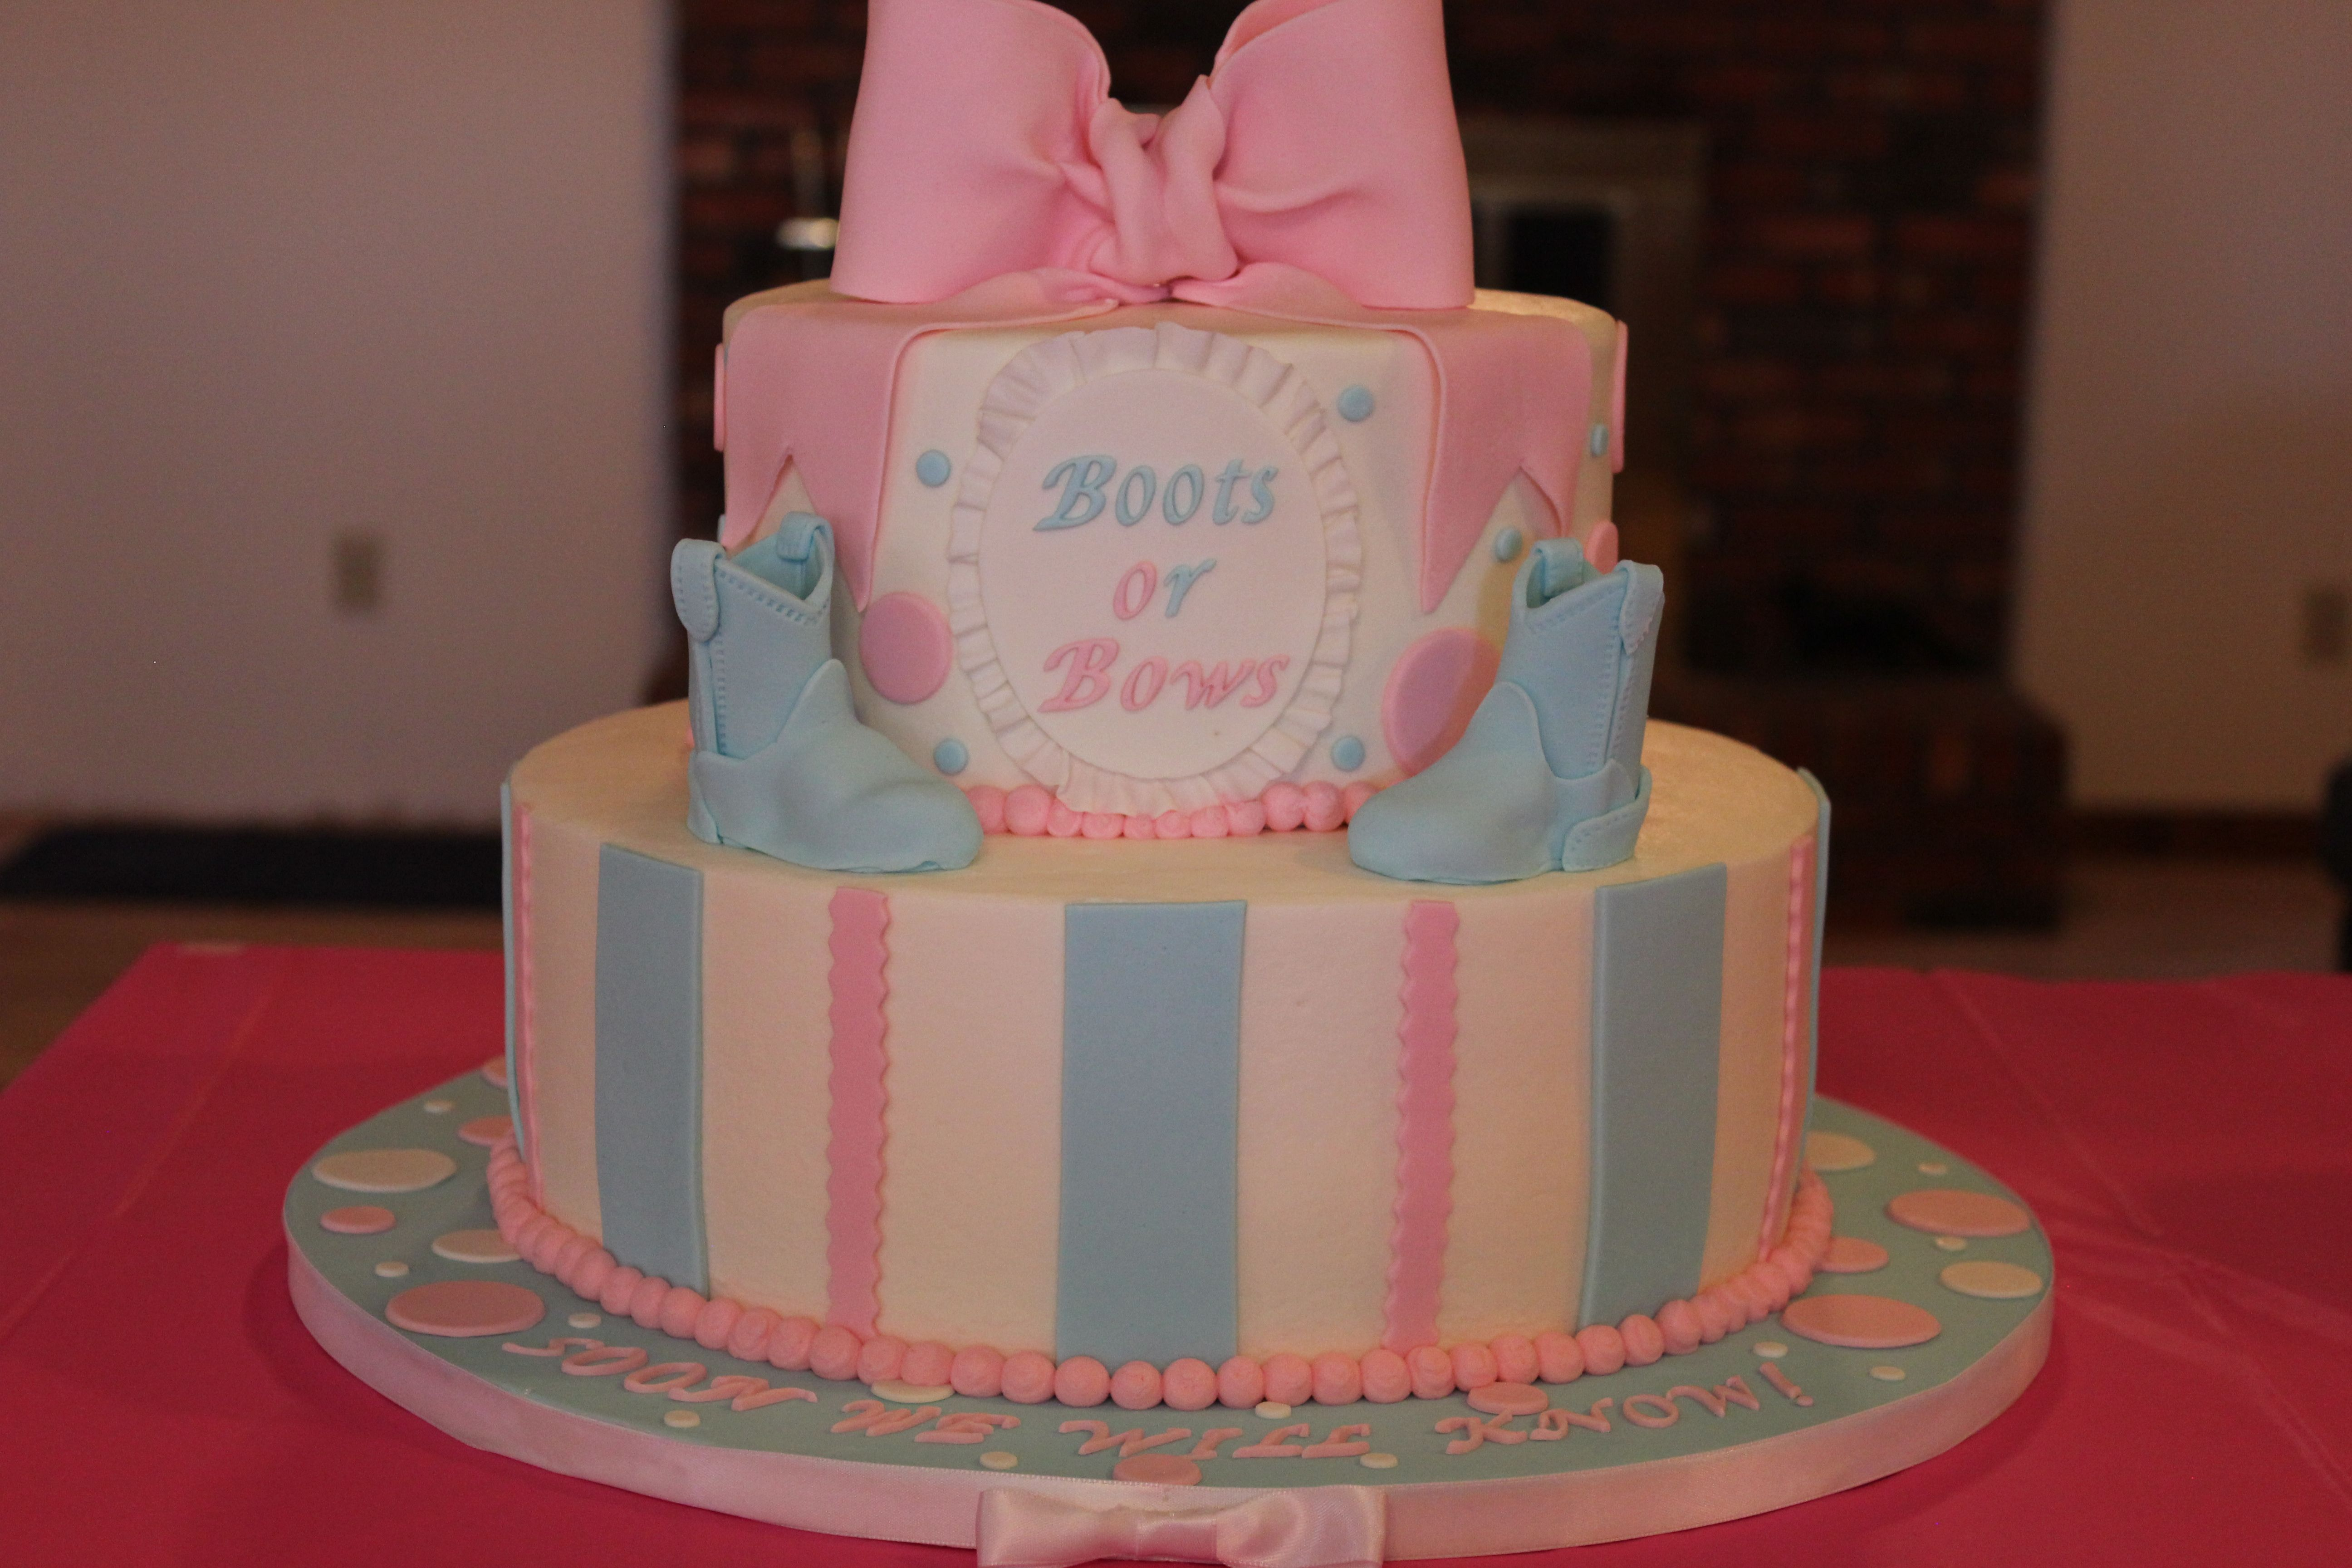 My First Gender Reveal Cake Boots Or Bows Soon We Will Know Gender Reveal Cake Gender Reveal Party Decorations Baby Gender Reveal Party